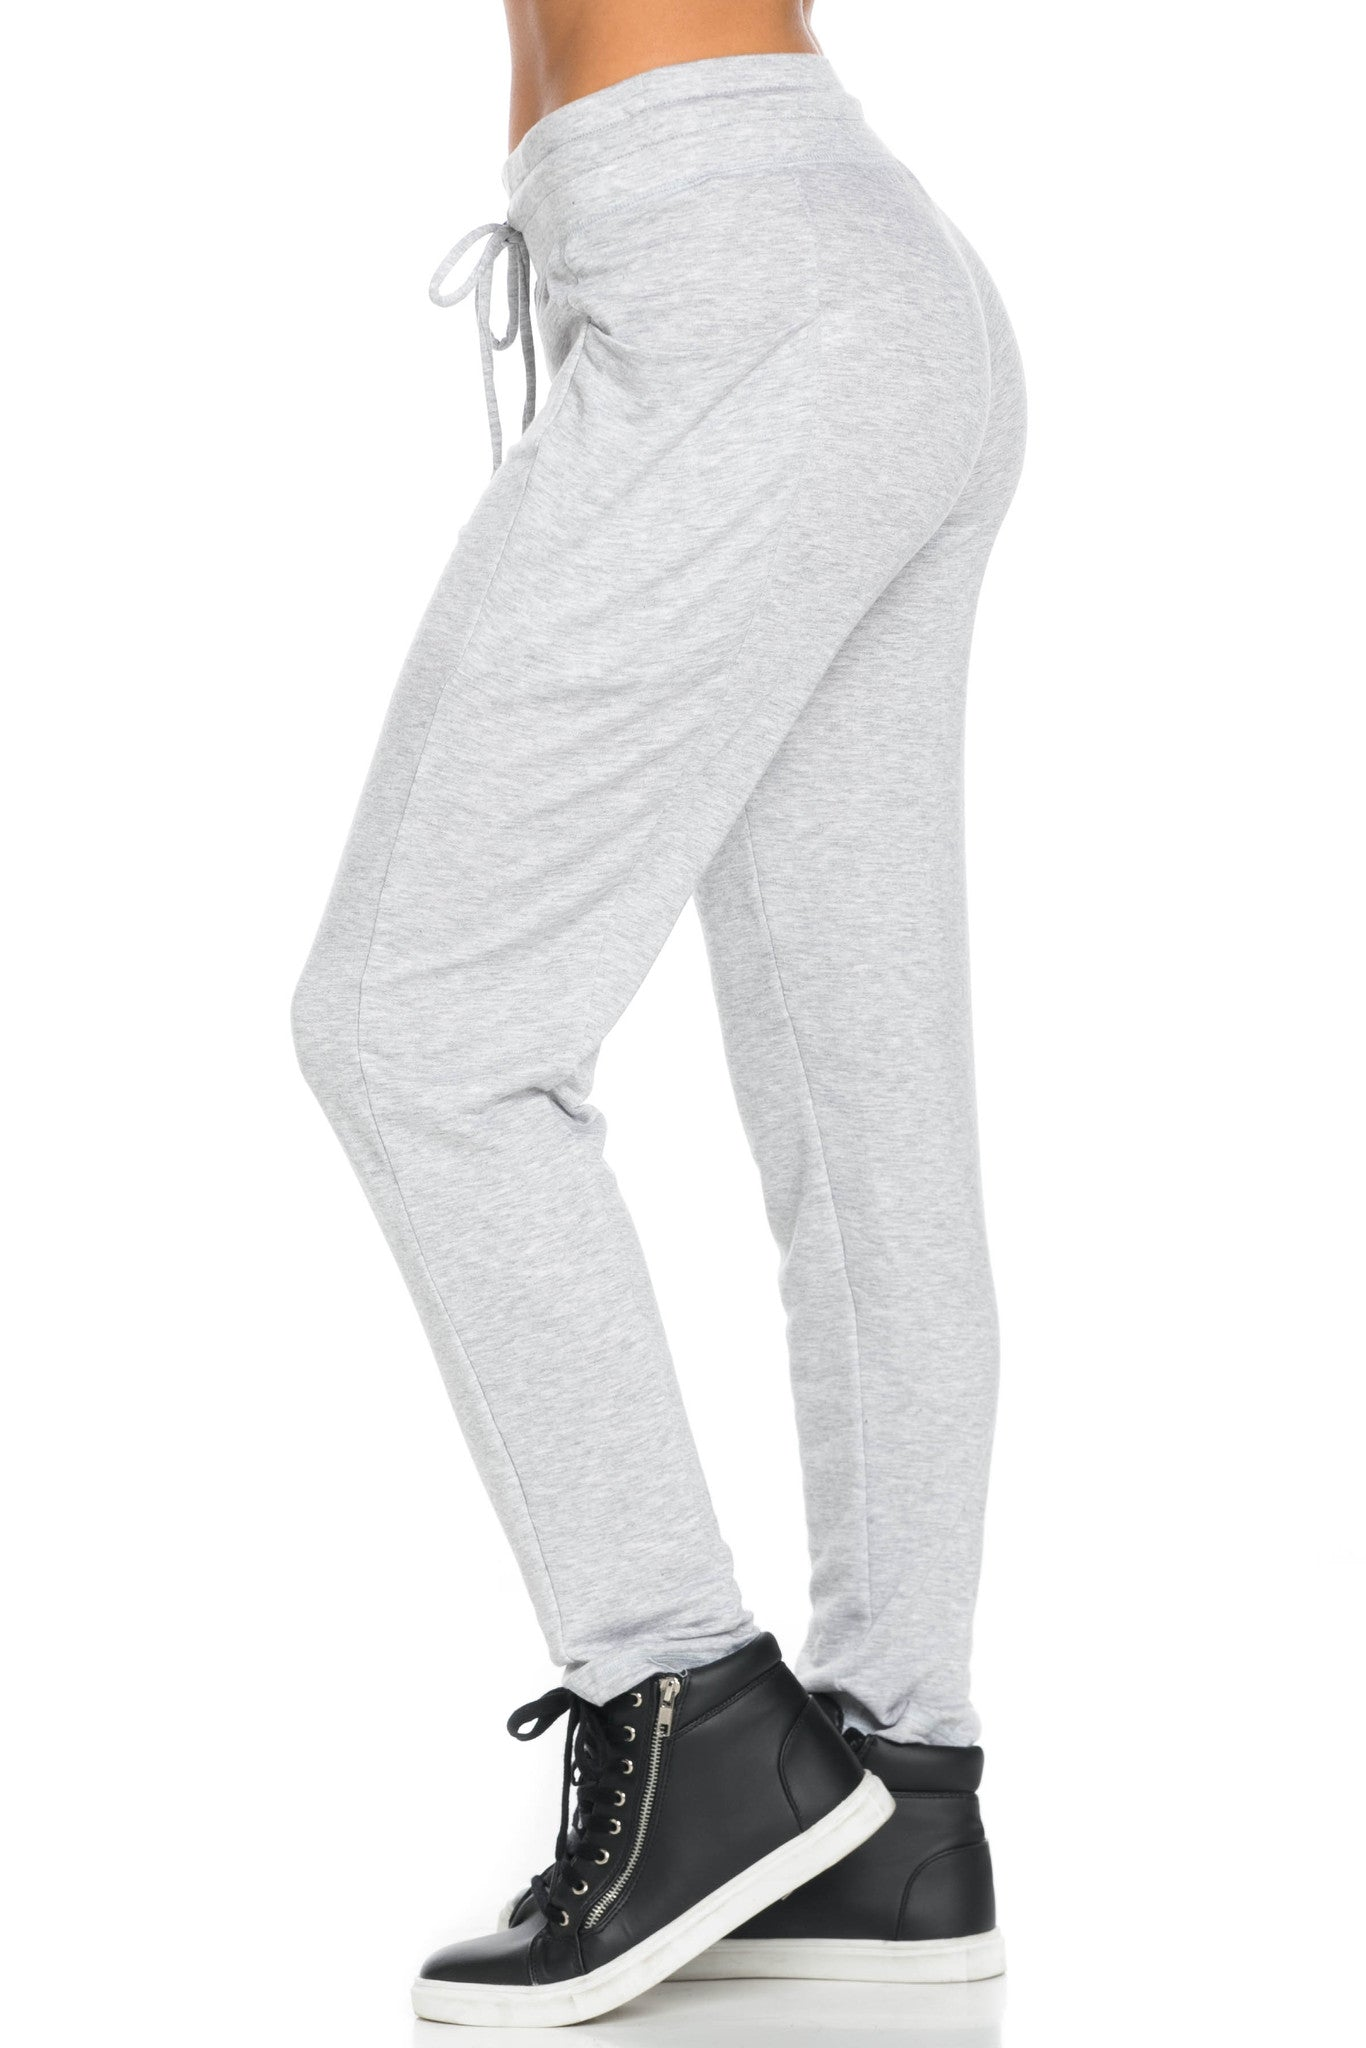 Heather Grey Harem Pants - Pants - My Yuccie - 5